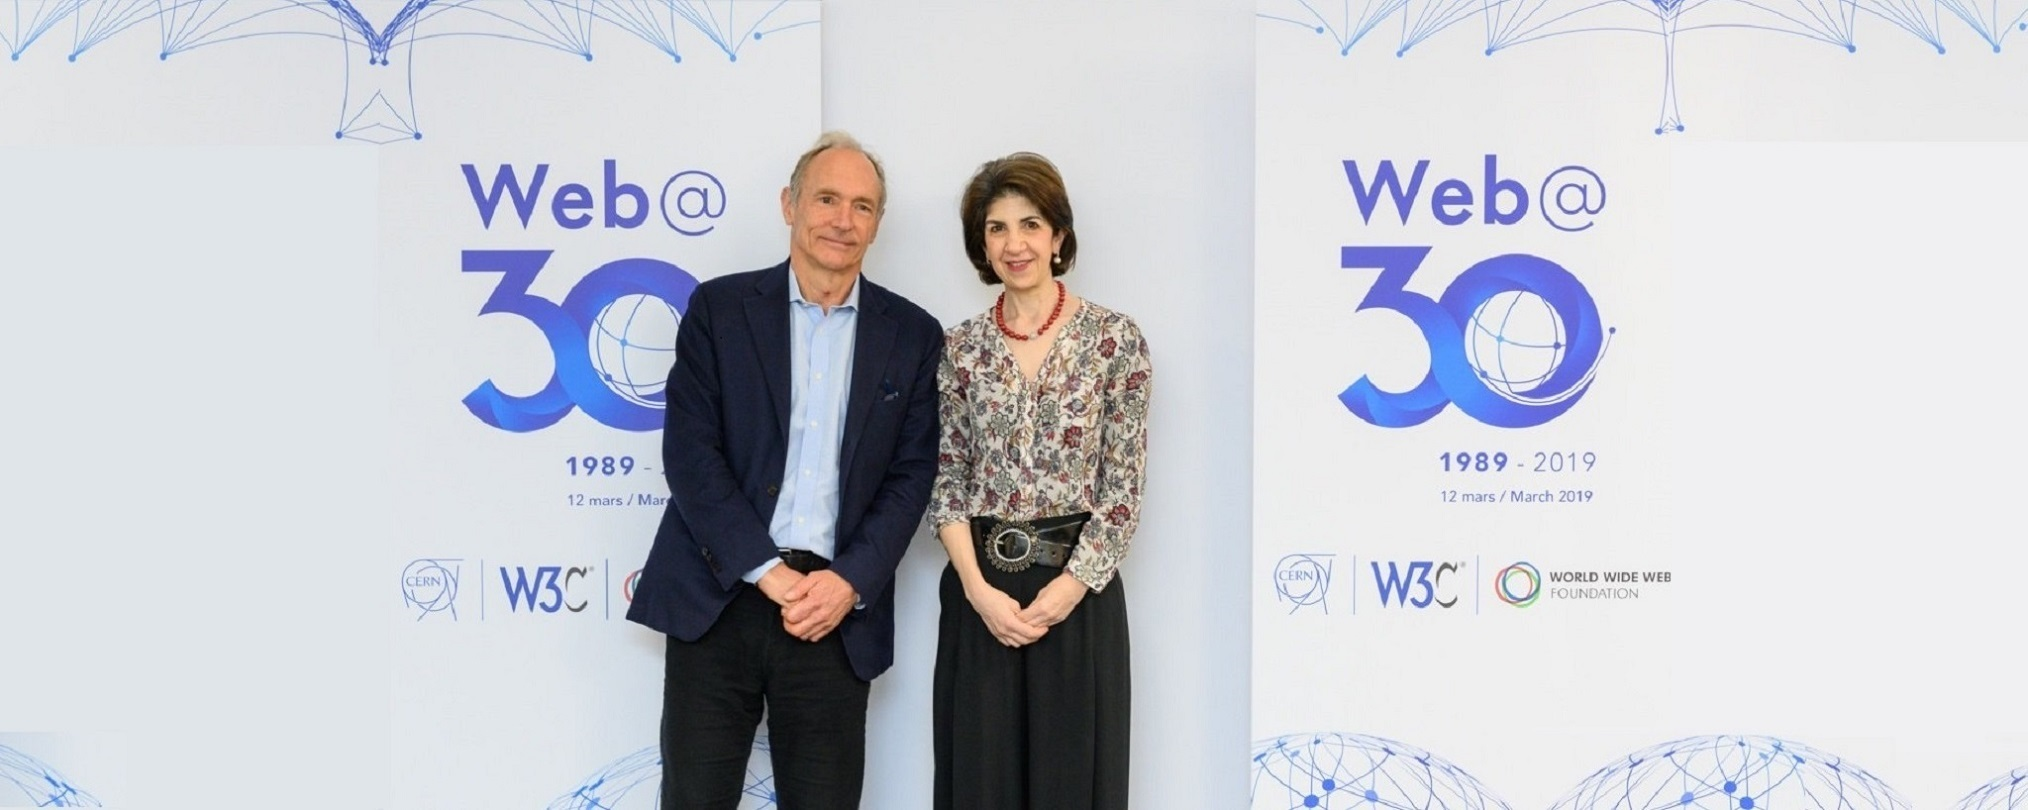 12 March 2019 Celebrations for the web 30th birthday